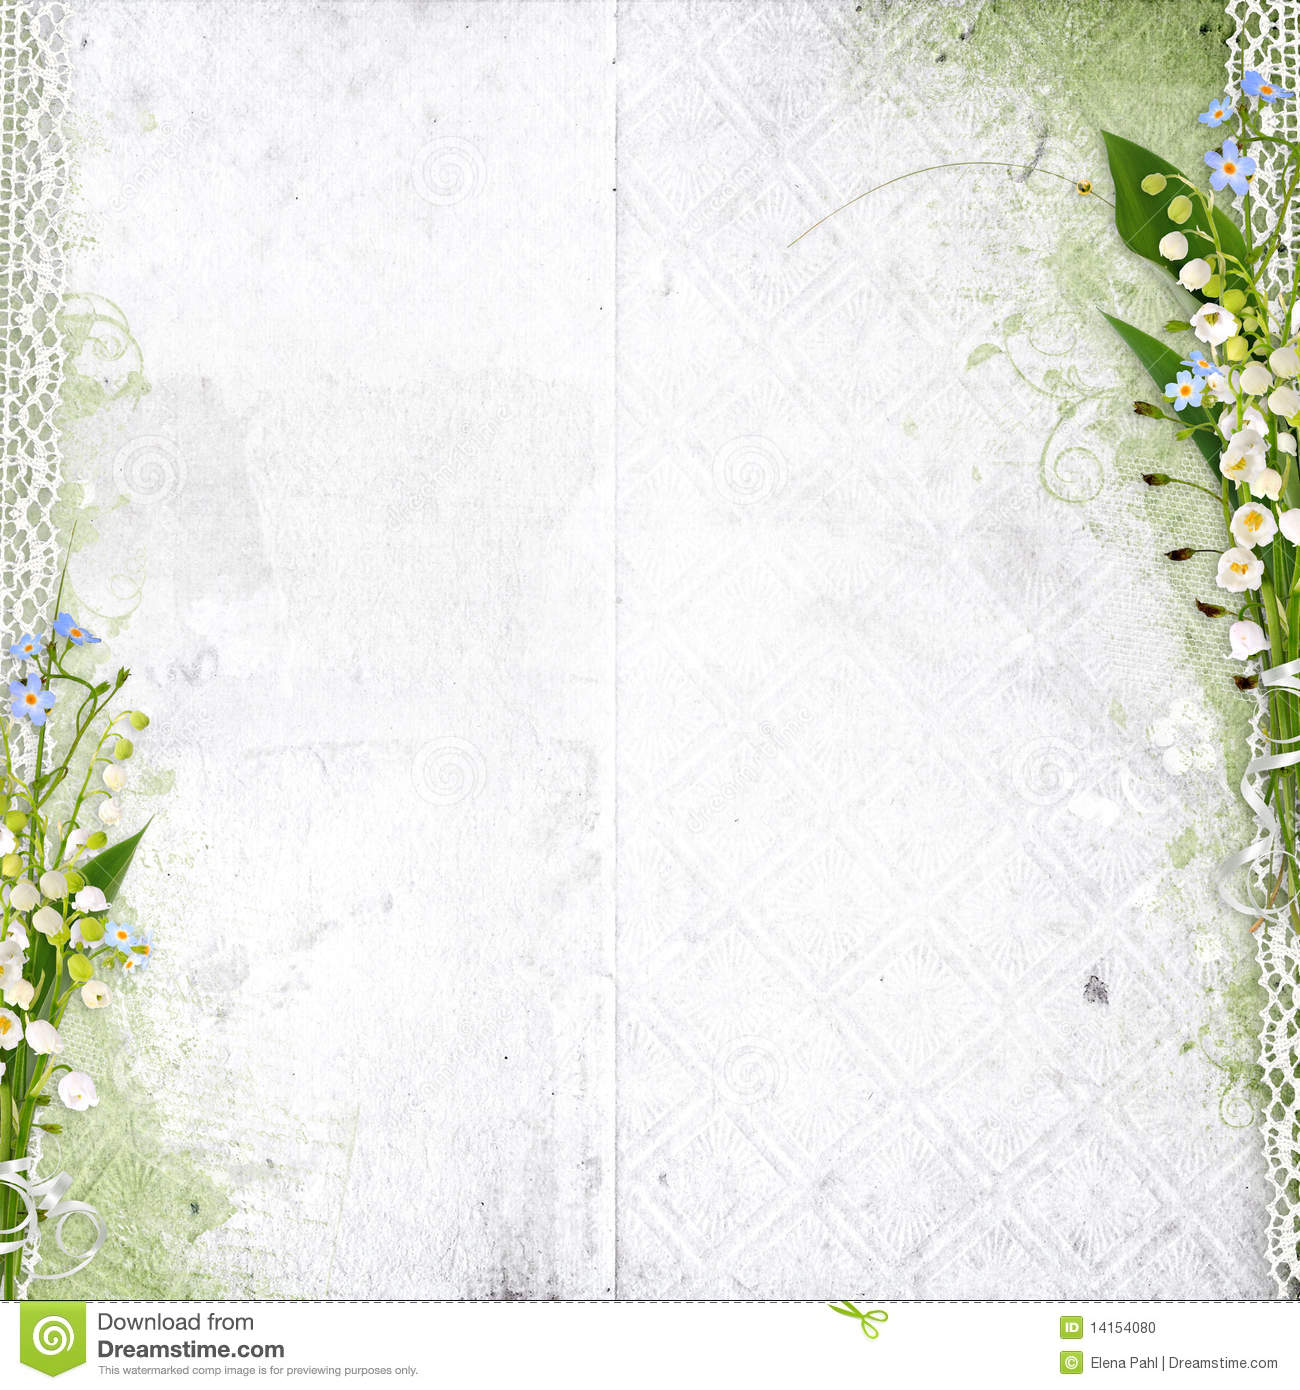 White Background With Lily Of The Valley Stock Photo - Image: 14154080